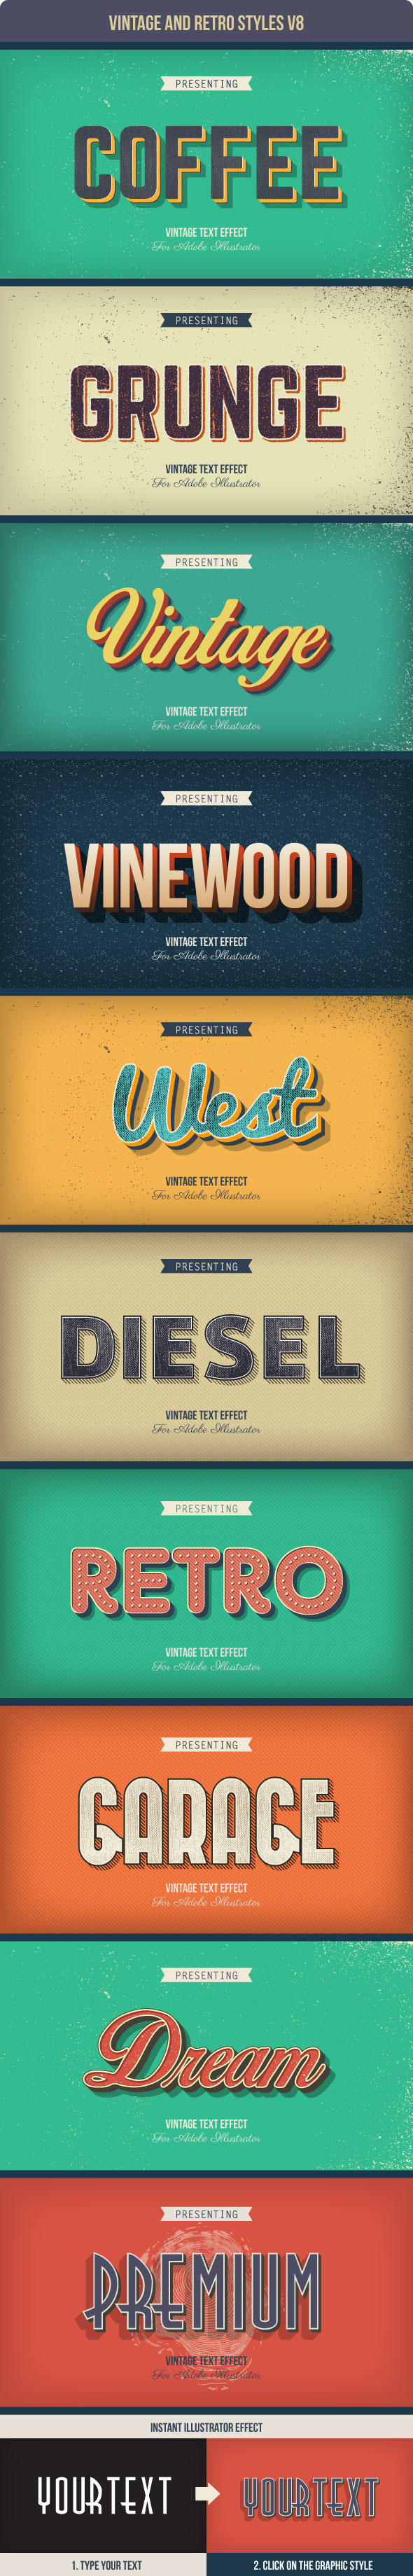 Vintage and Retro Styles V8 - Styles Illustrator